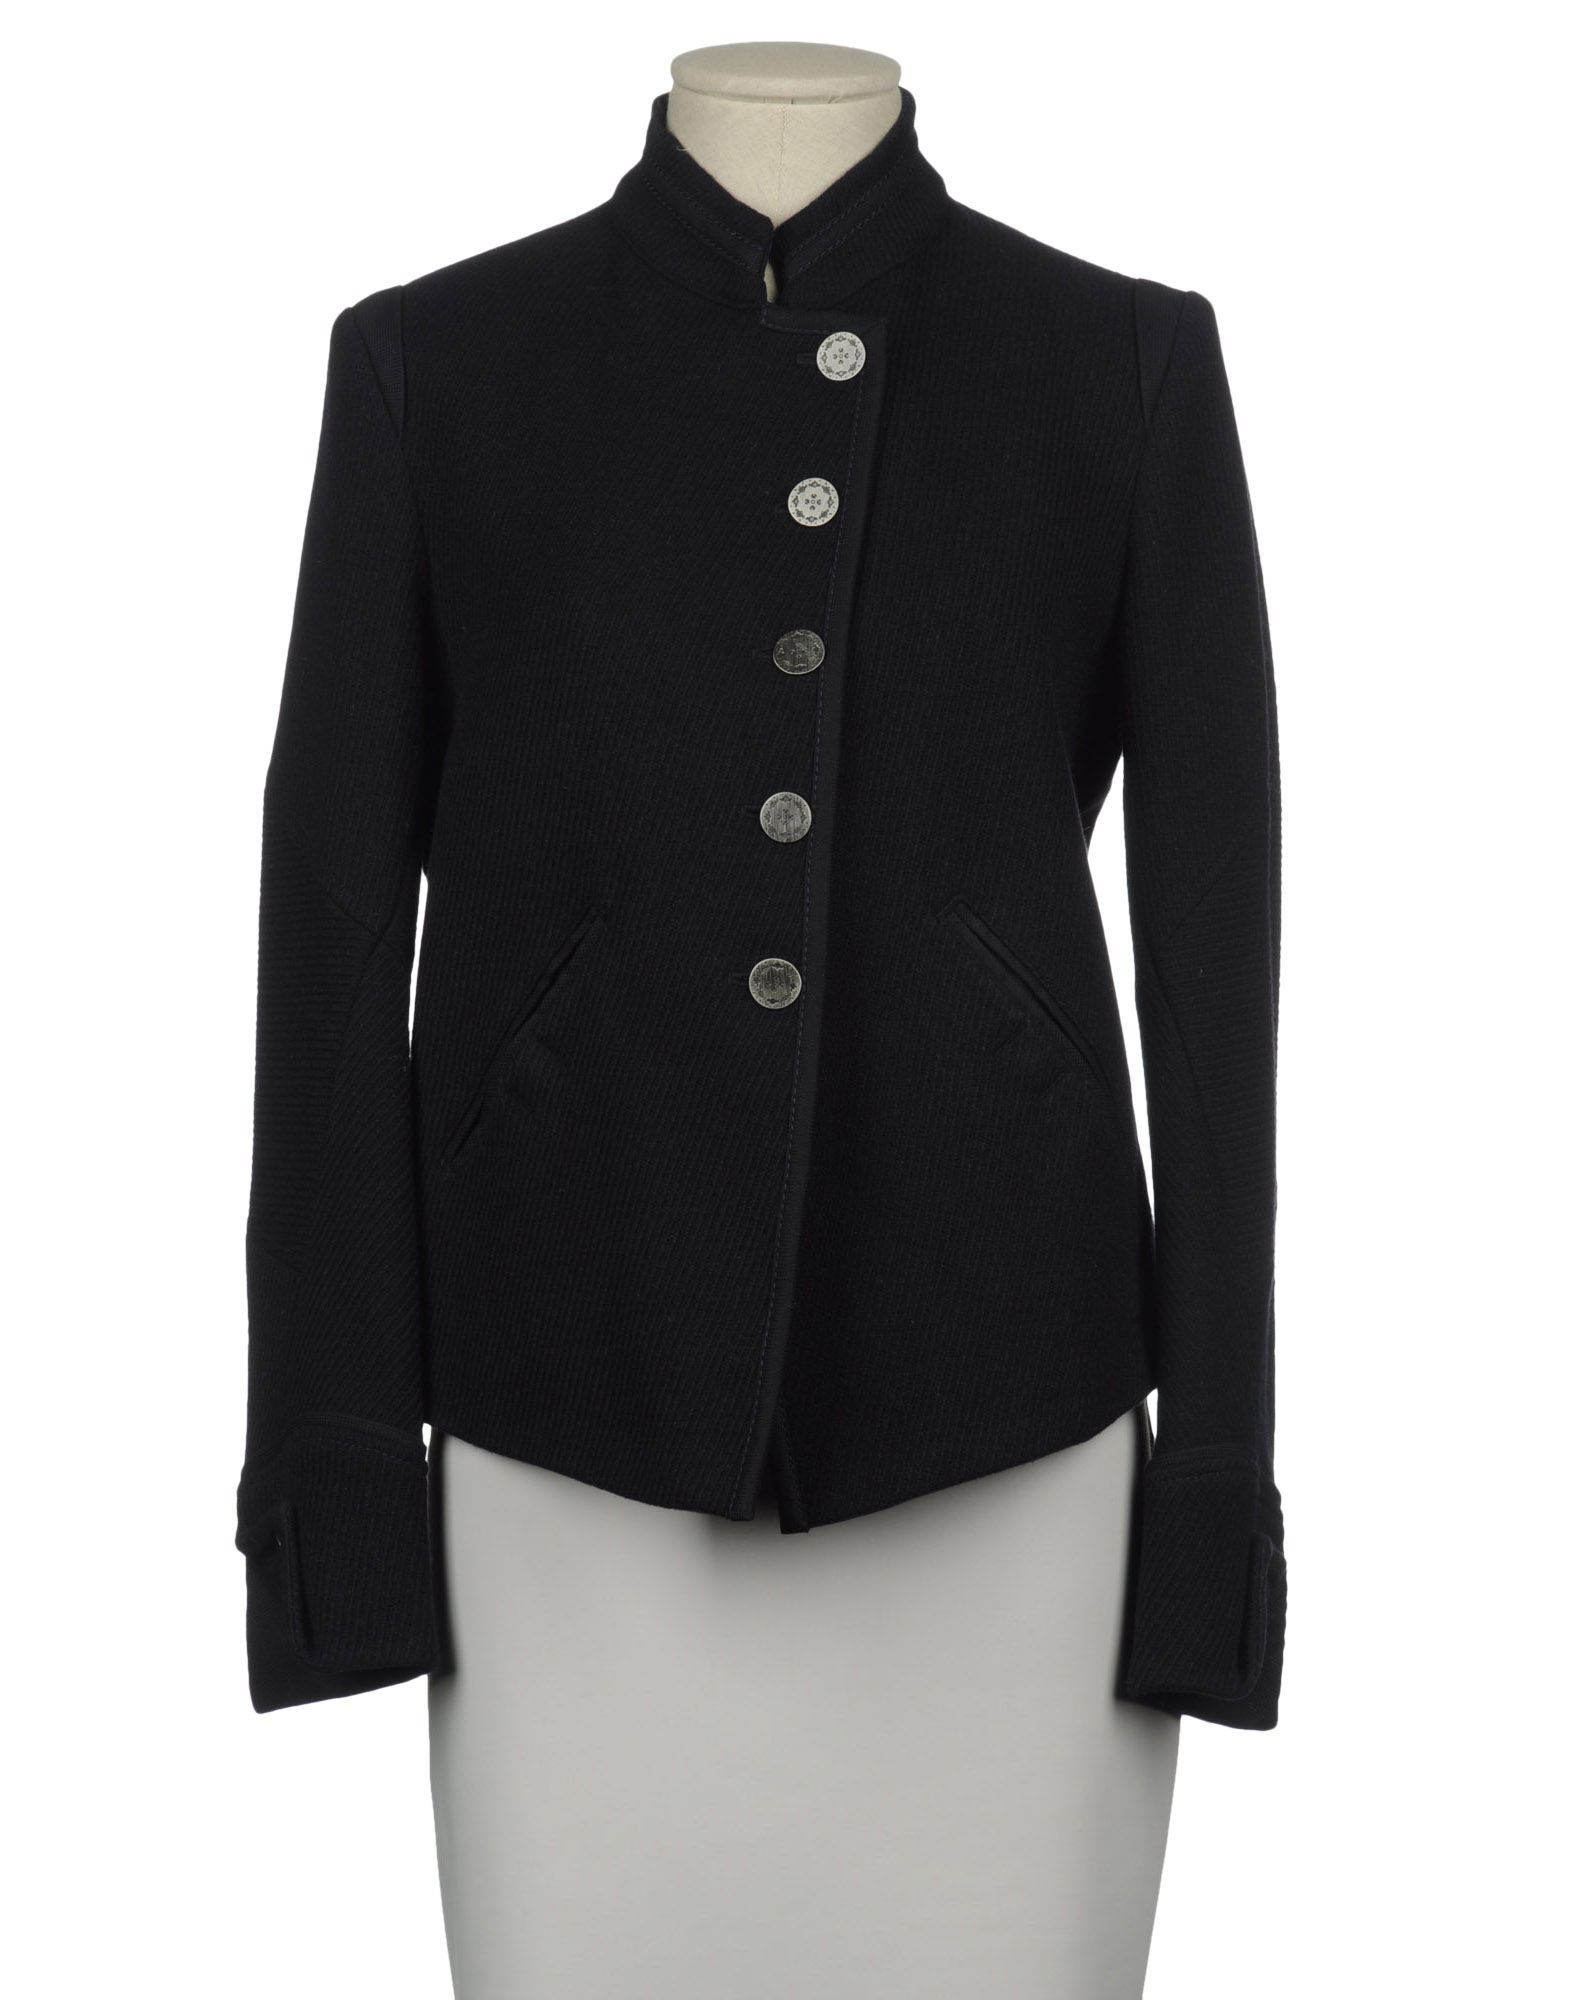 0f1aeee43fb569 LJD MARITHE' FRANCOIS GIRBAUD Women - Coats & jackets - Jacket LJD MARITHE'  FRANCOIS GIRBAUD on YOOX United States Nice clean military styling!